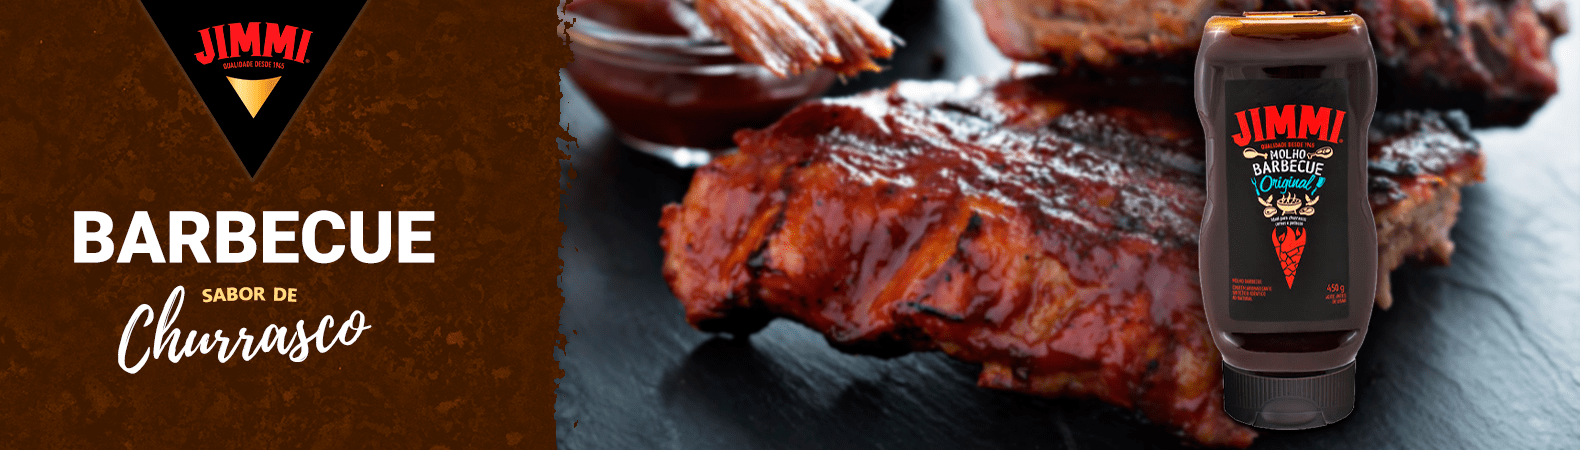 banner barbecue